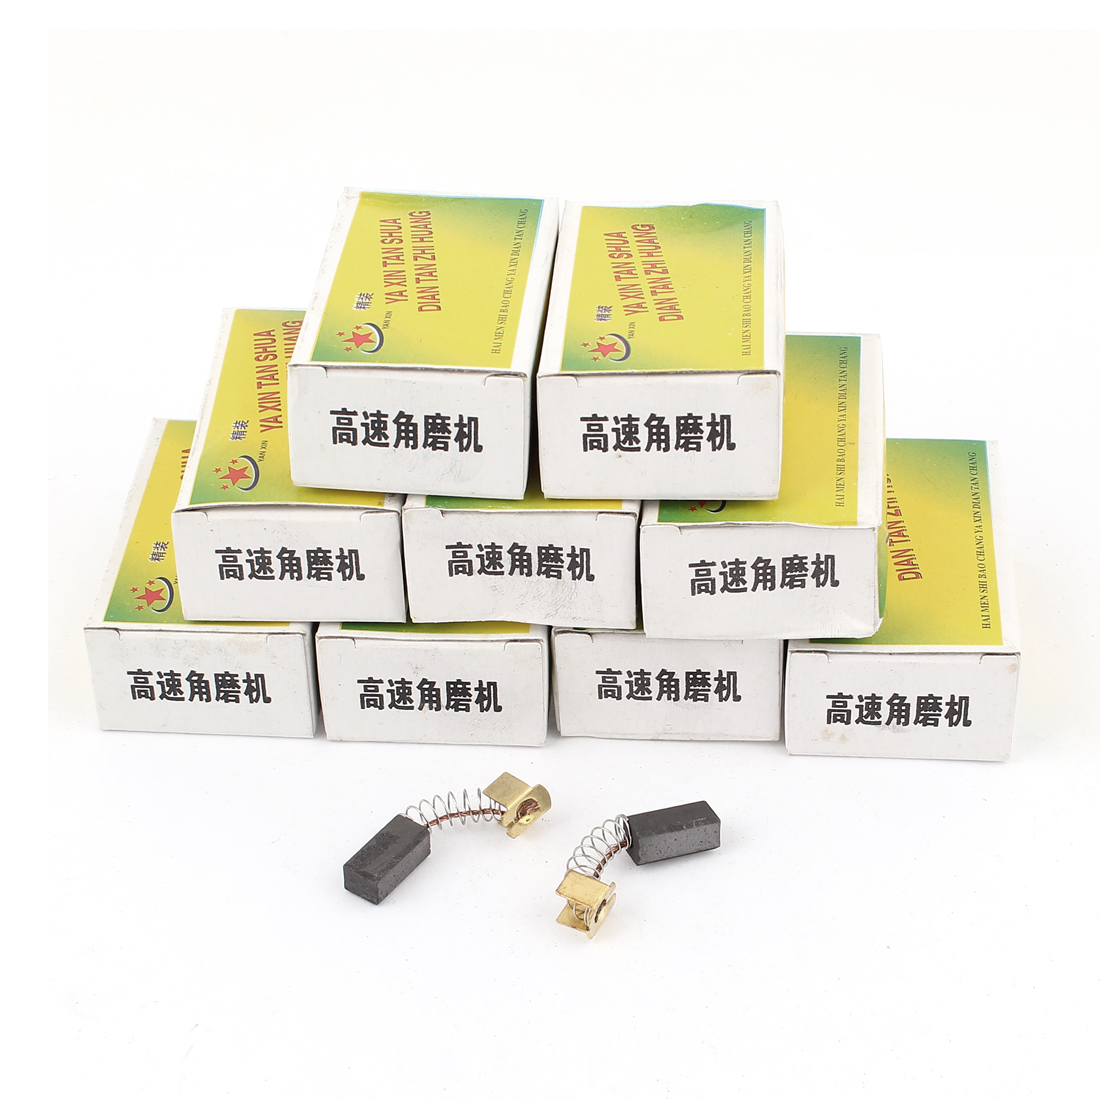 10Pairs Electric Power Tool Single Shunt Motor Carbon Brushes 13mm x 6mm x 6mm for Angle Grinder